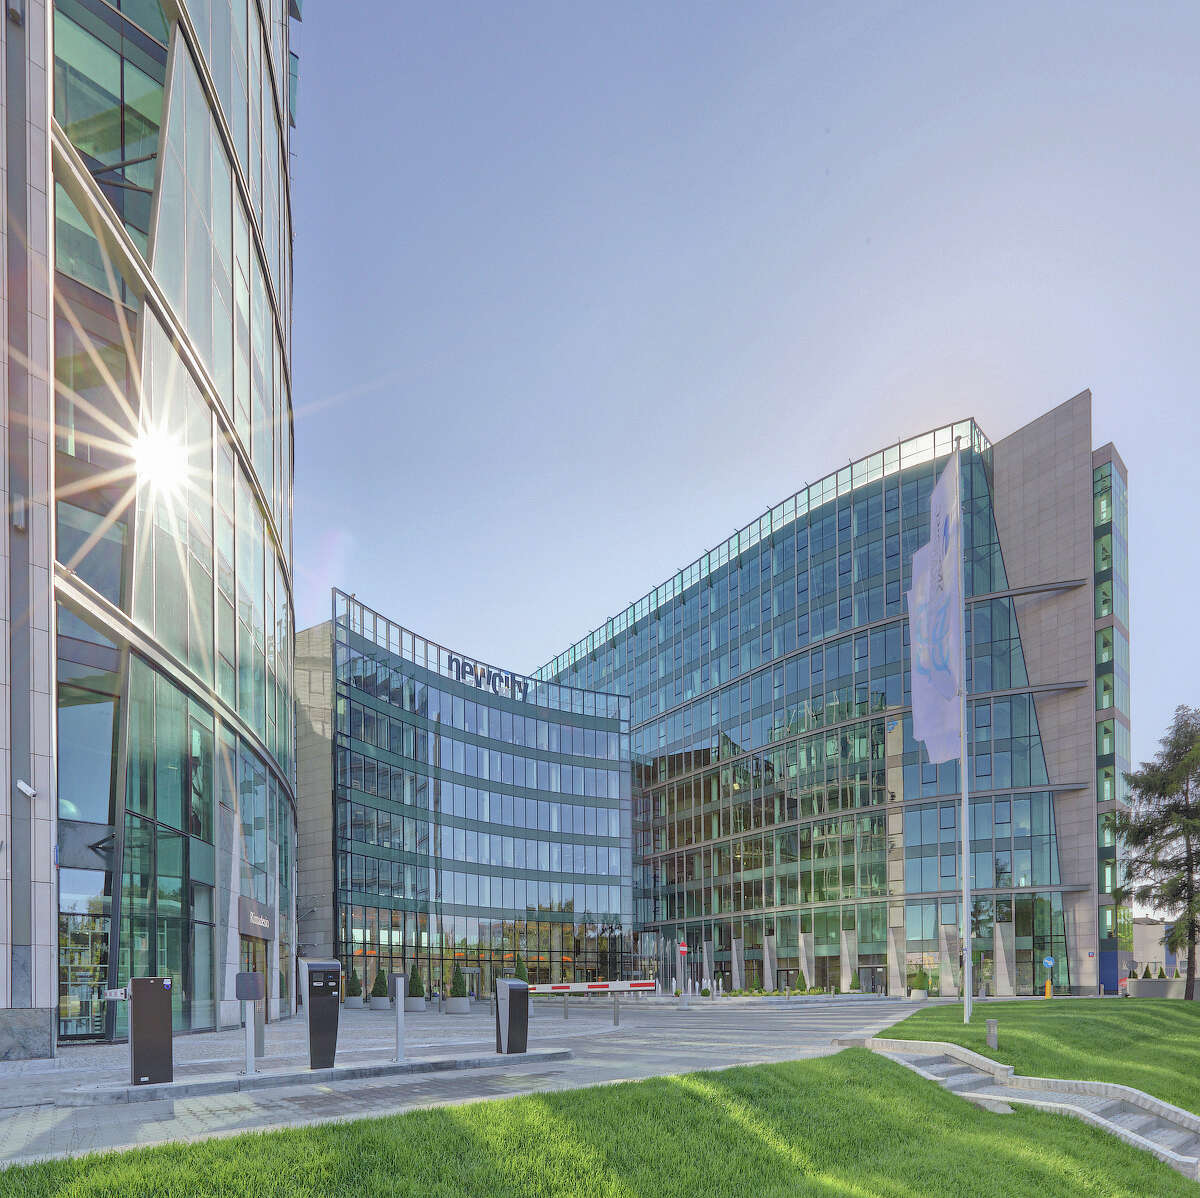 Hines Global REIT has acquired the 481,070-square-foot New City office complex in Warsaw, Poland, from Europejskie Centrum Inwestycyjne. The two-building complex is fully leased to 51 tenants.